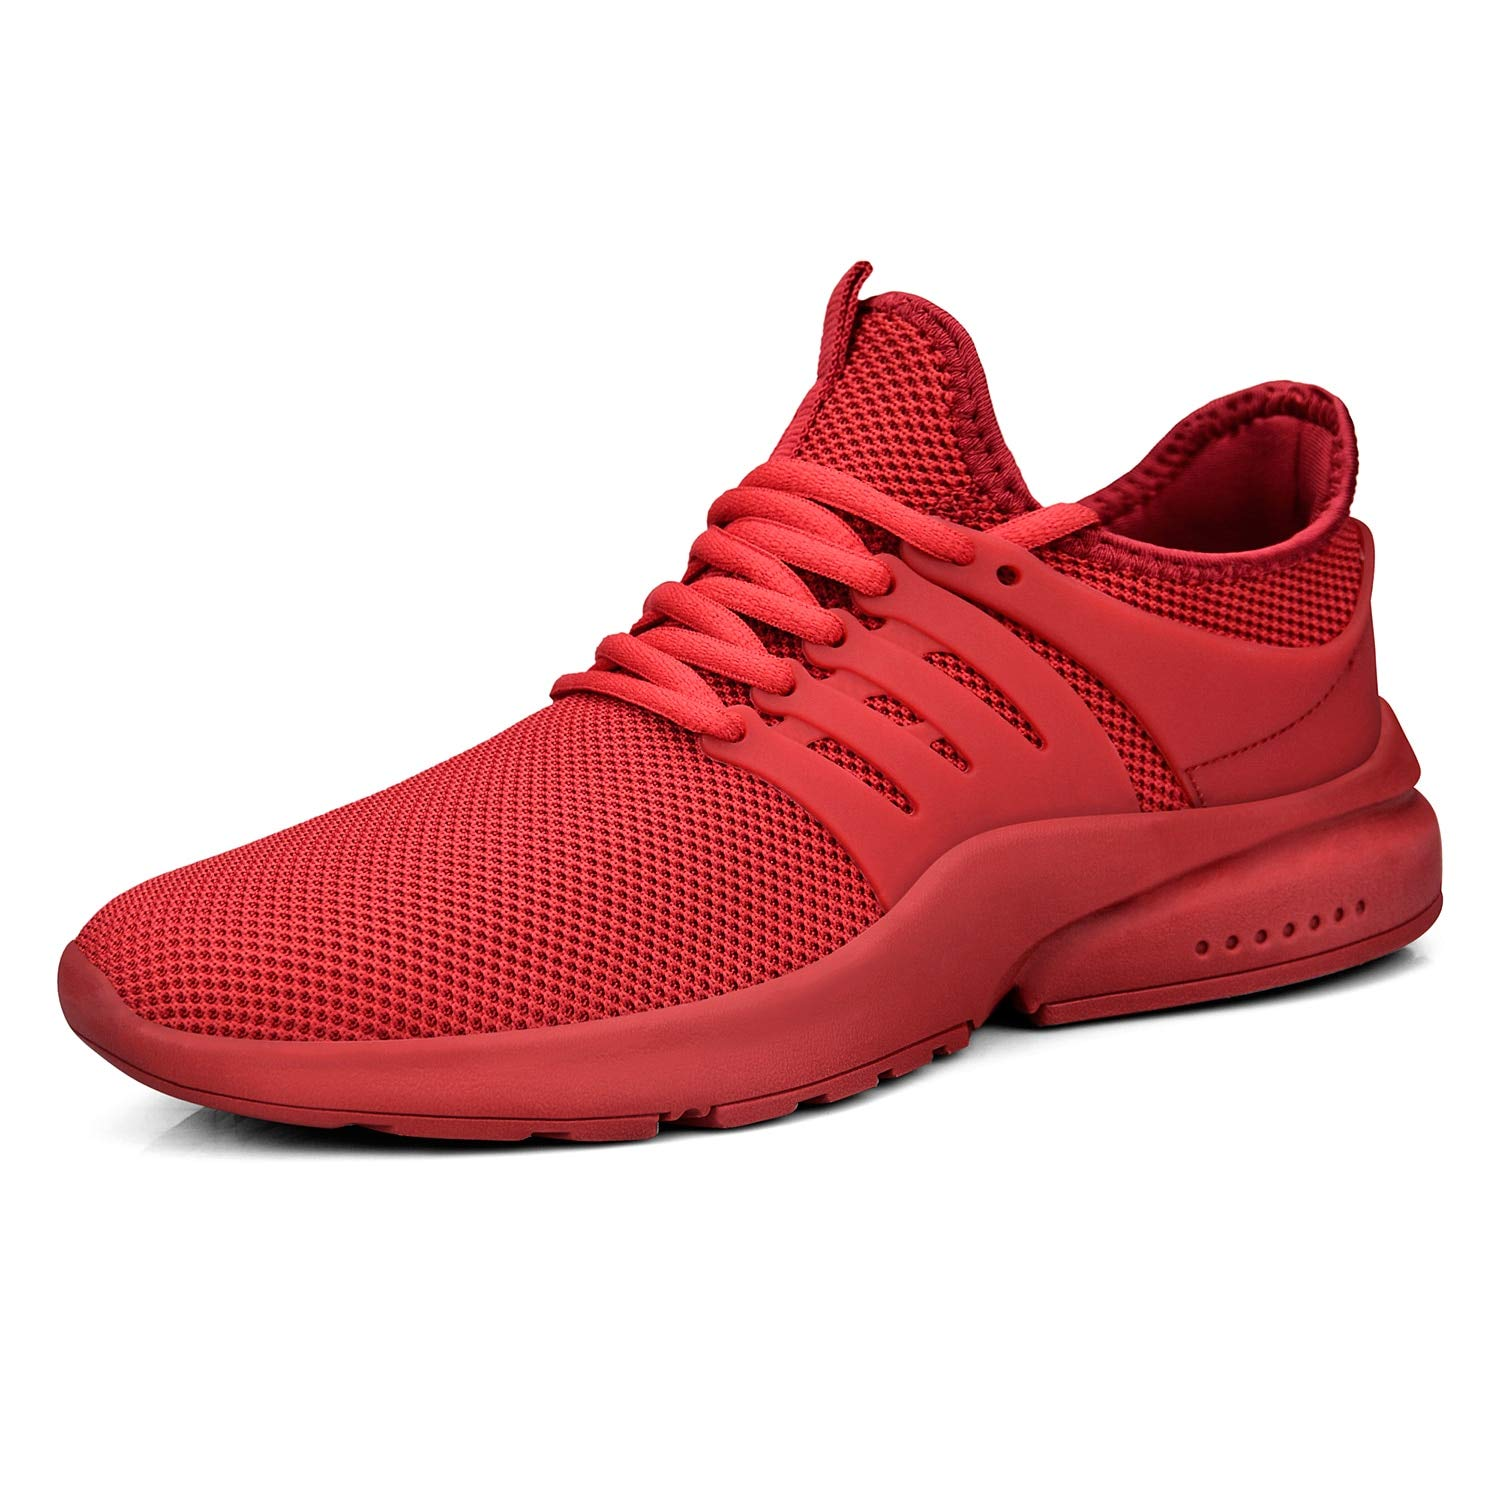 Feetmat Mens Walking Outdoor Lightweight Breathable Shoes Red Running Shoes for Boys Gym Athletics Tennis Sneakers Red 7M by Feetmat